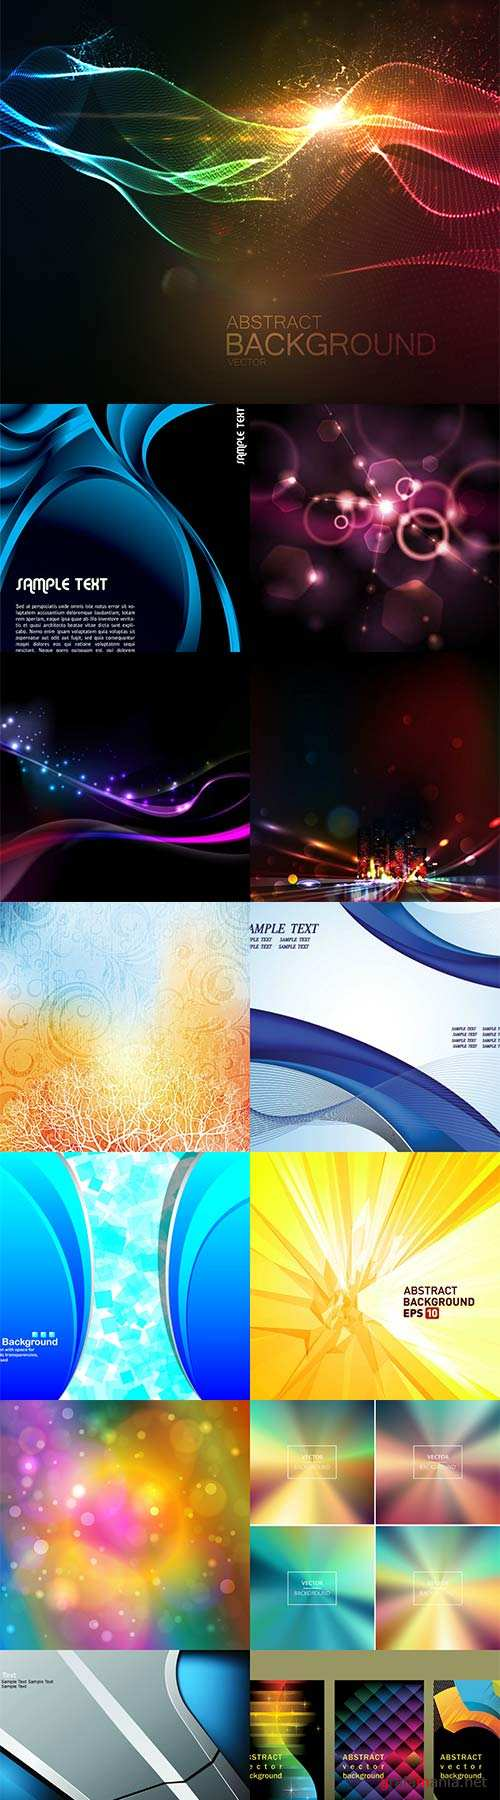 Bright colorful abstract backgrounds vector -47